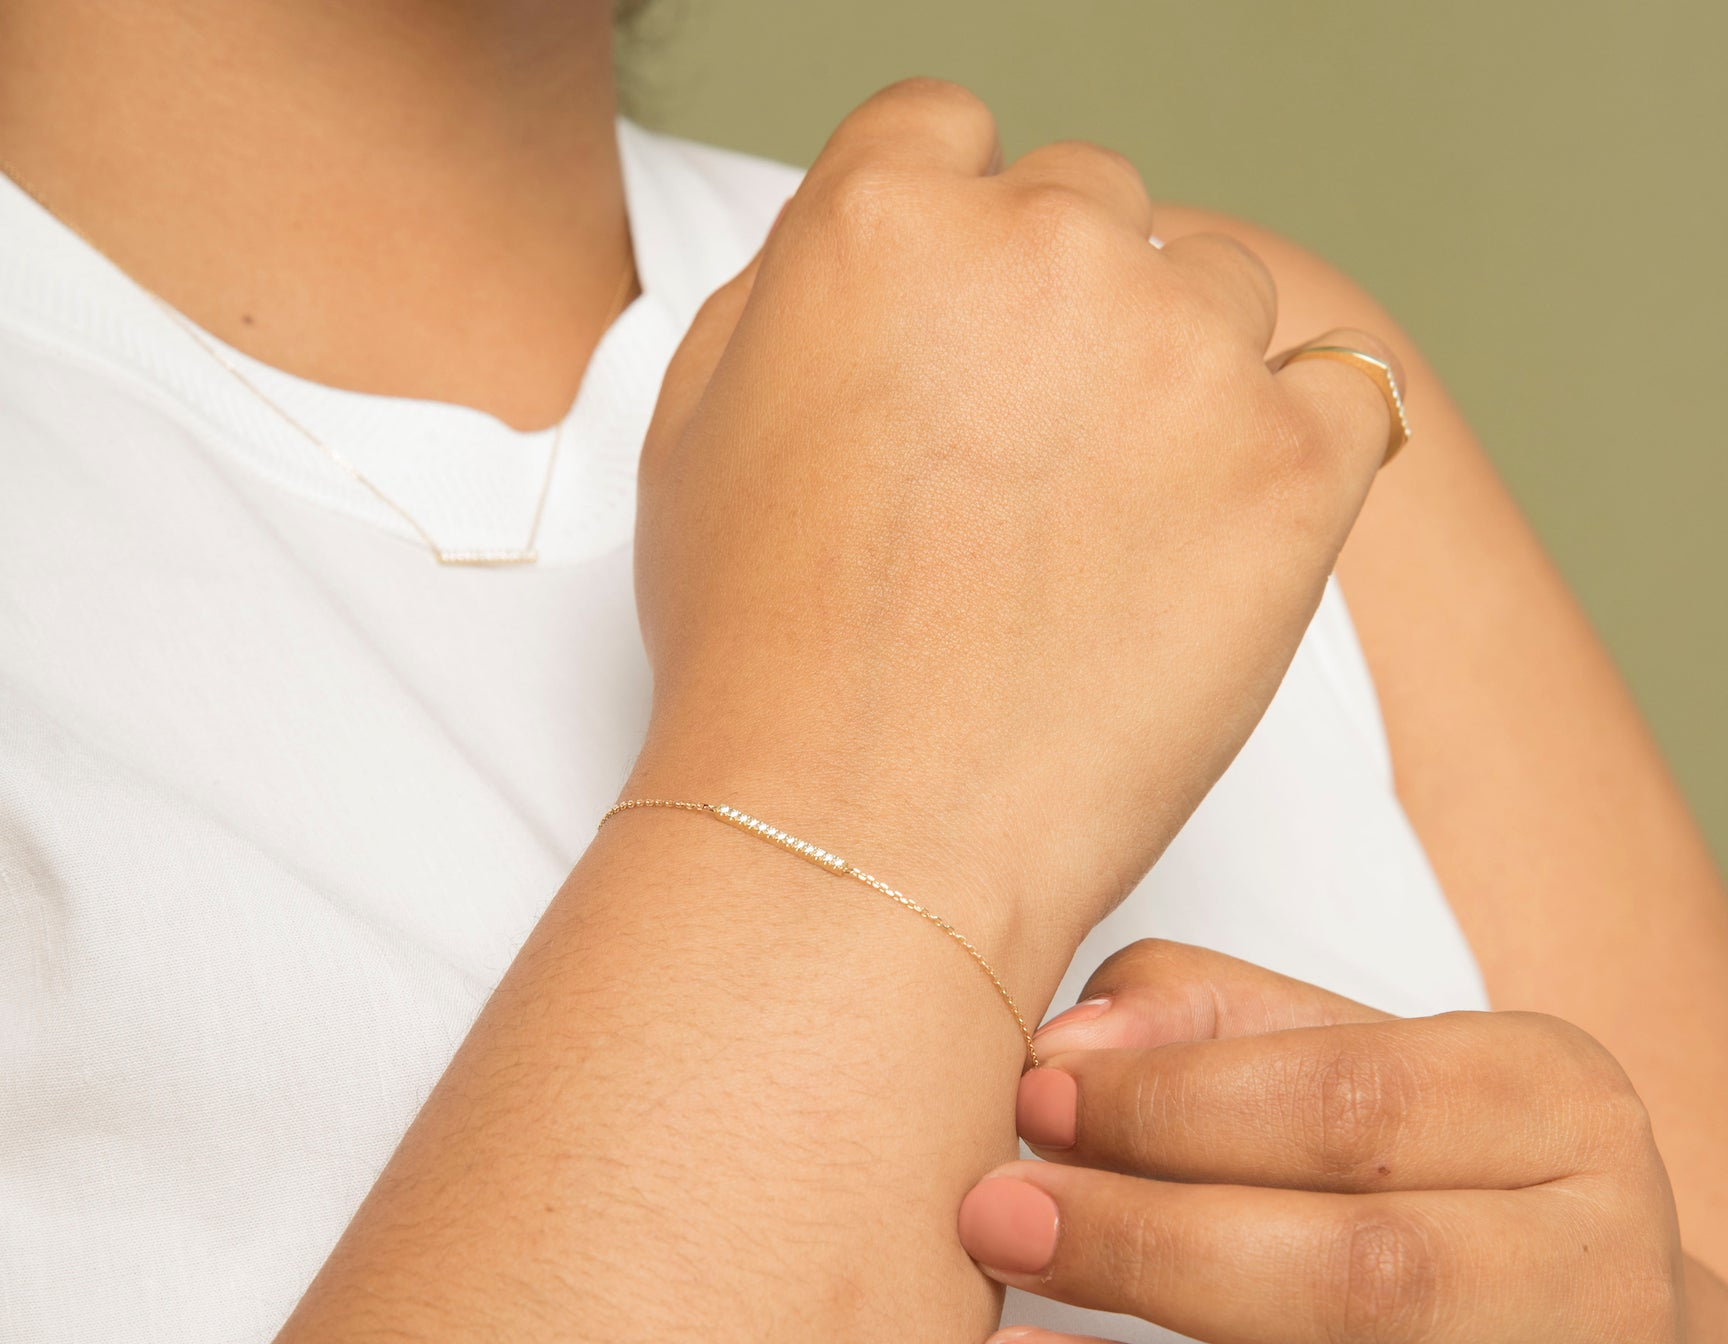 Model wearing sleek Vrai solid gold Line Bracelet with Pave, 14K White Gold